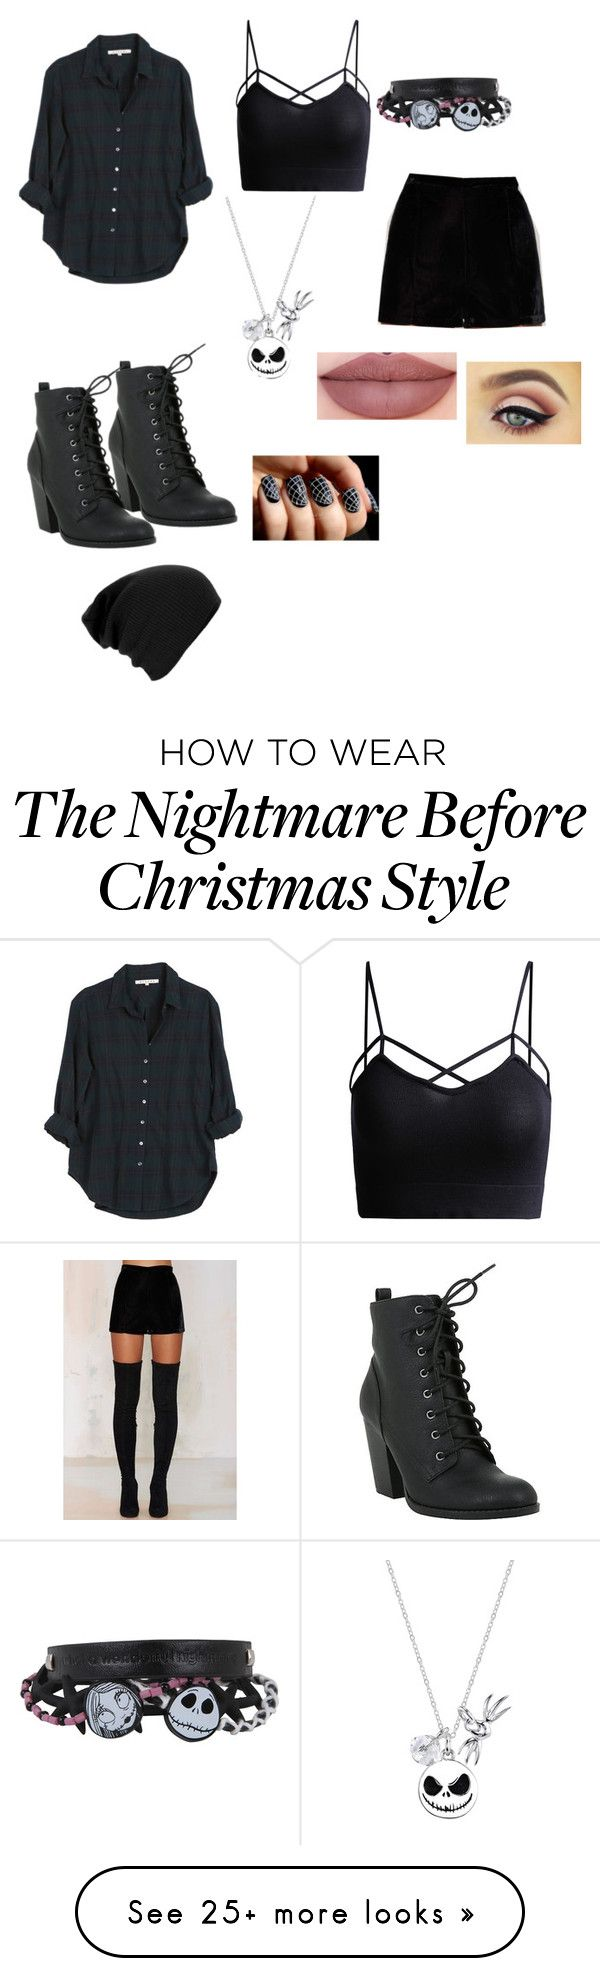 """Untitled #1455"" by jennamarbles13 on Polyvore featuring Xirena, Native Rose and Disney"